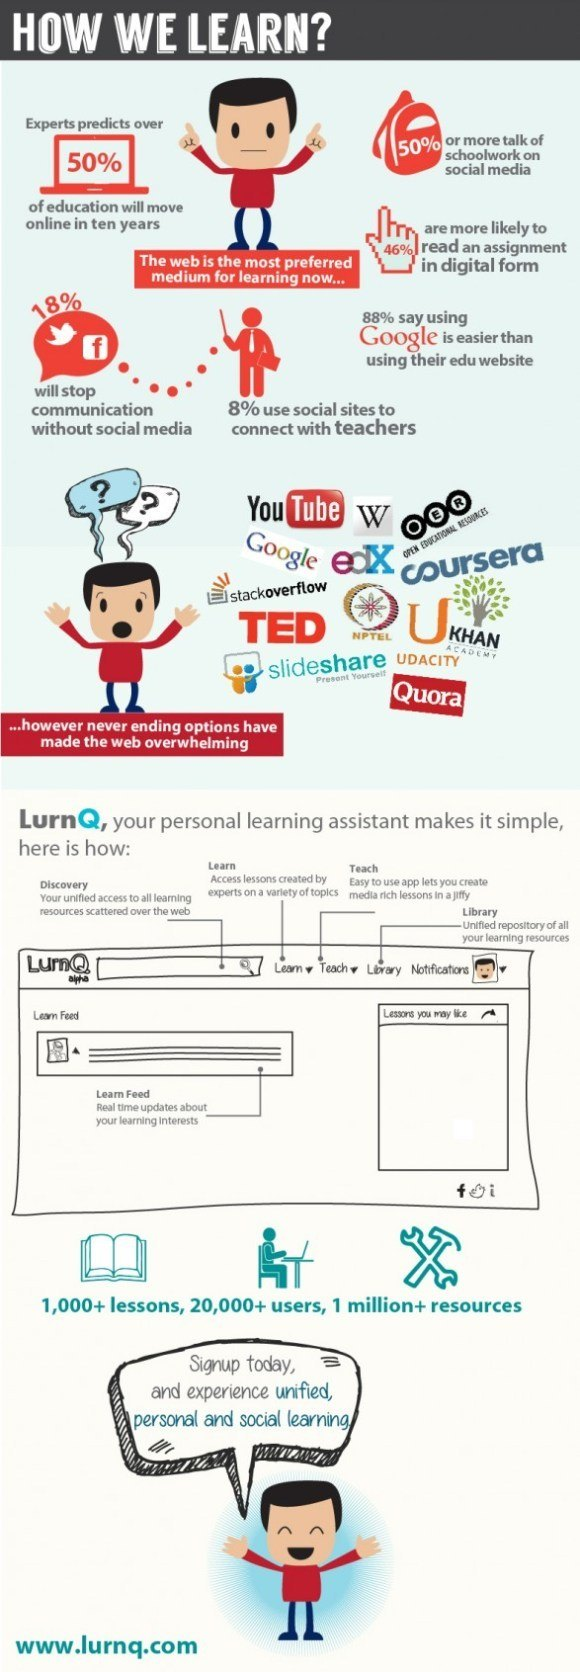 How-We-Learn-Infographic